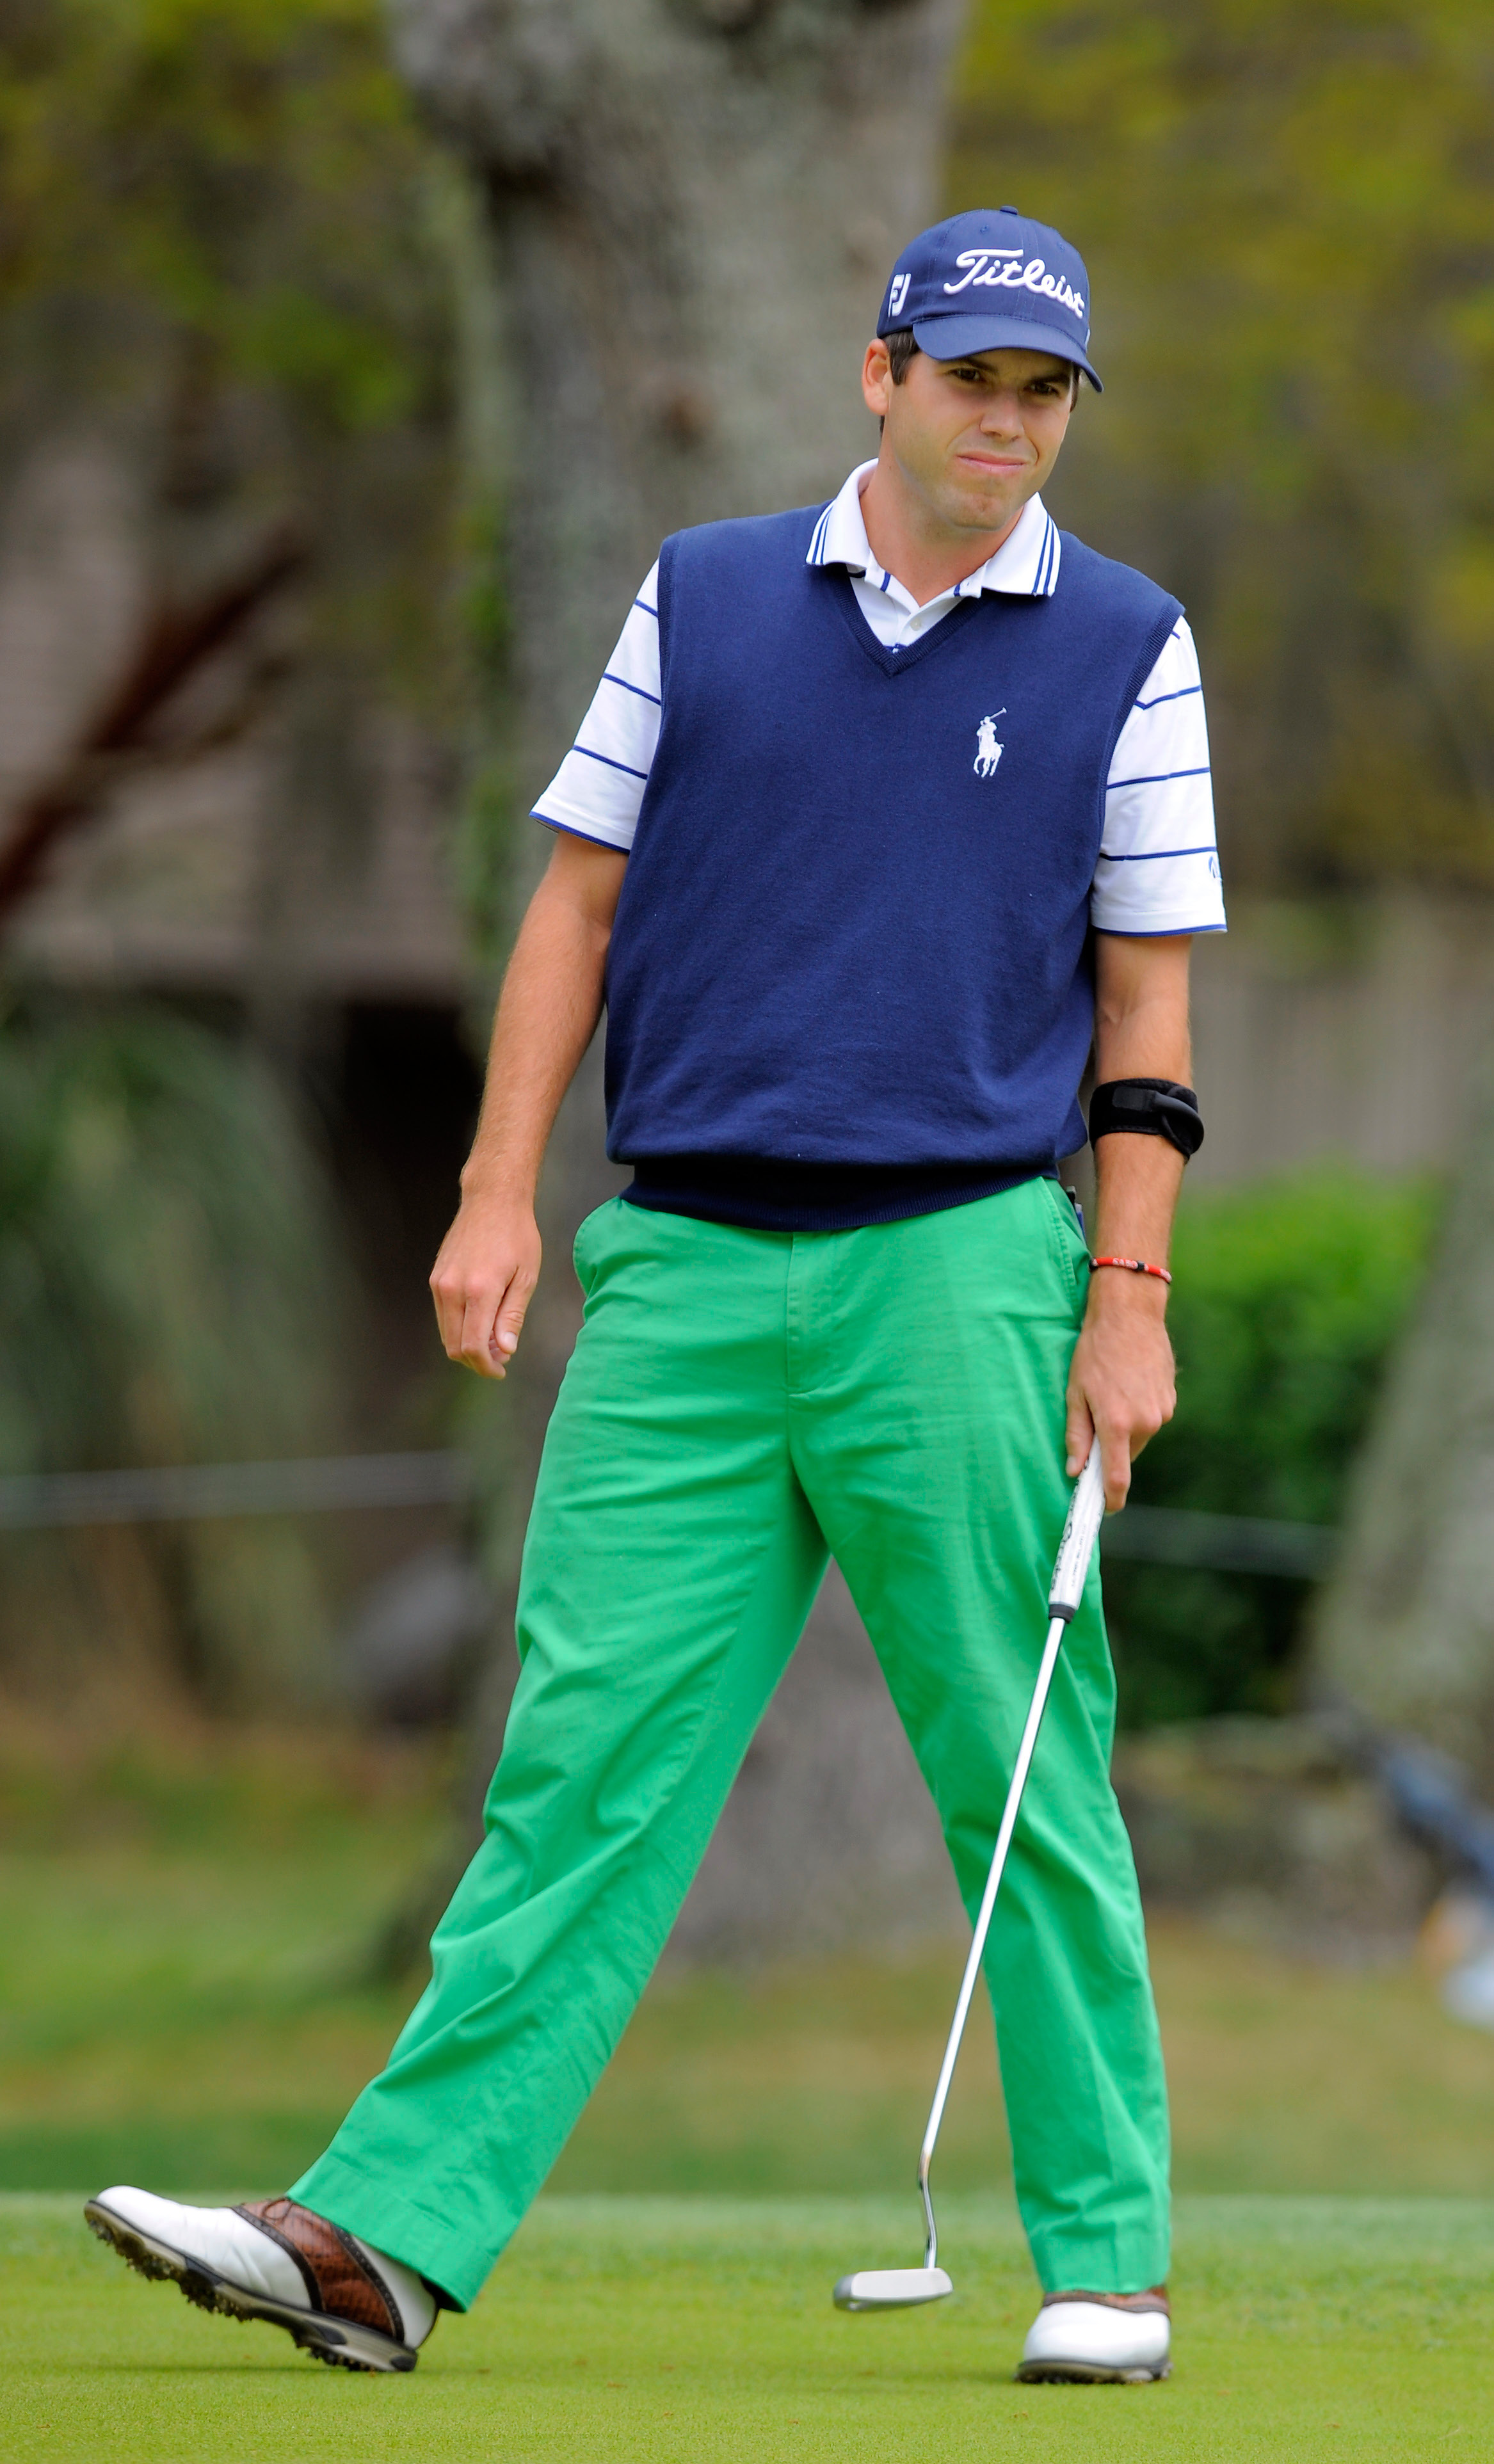 Ben Martin watches his birdie putt go in on the second hole during the final round of the RBC Heritage golf tournament in Hilton Head Island, S.C., Sunday, April 20, 2014. (AP Photo/Stephen B. Morton)